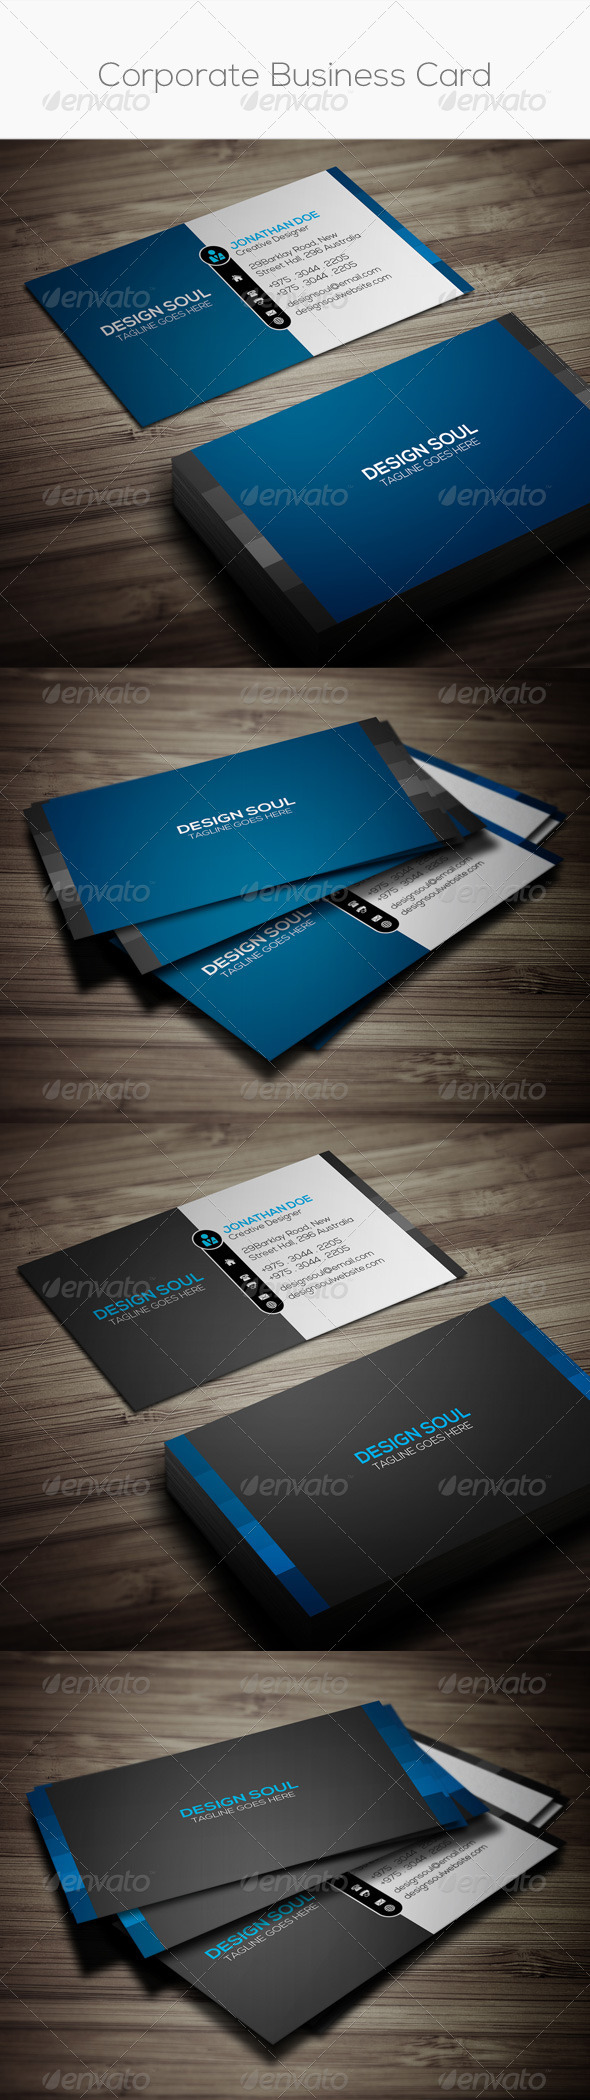 GraphicRiver Corporate Business Card 8368222